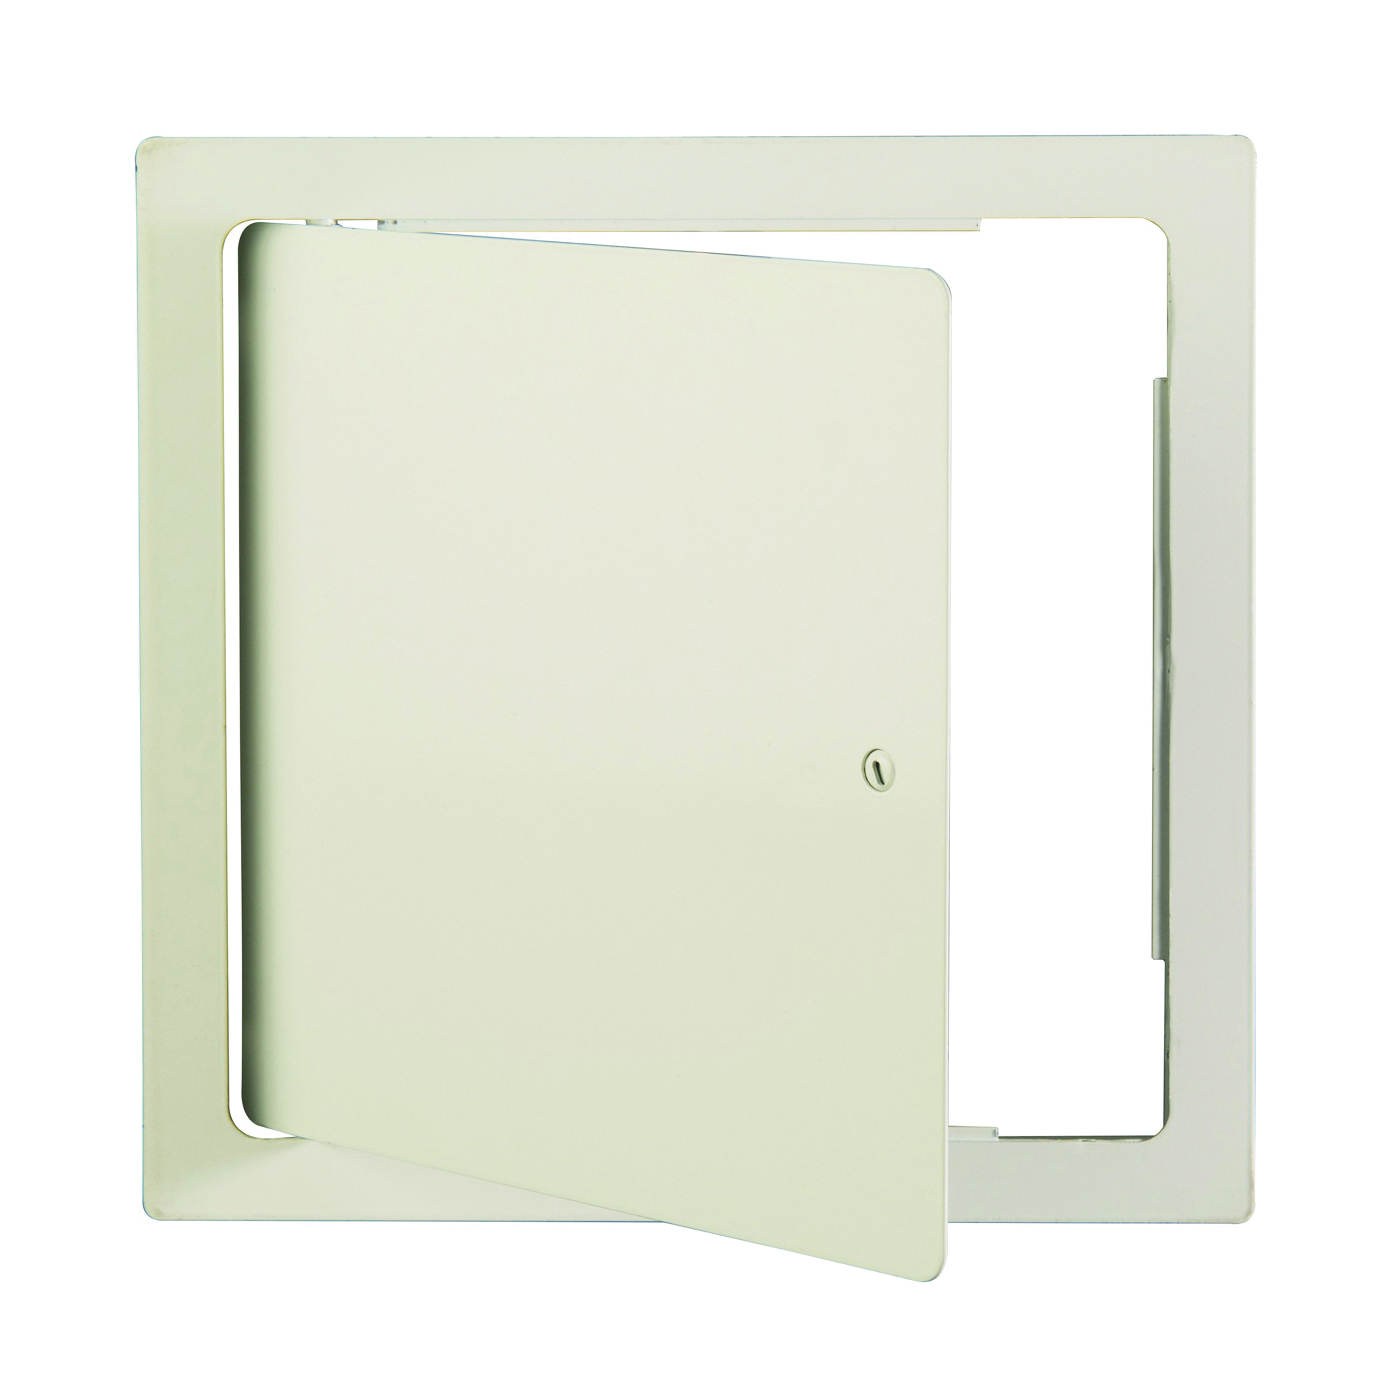 Picture of Karp DSC-214M Series MP2424S Access Door, 24 in W, Steel, Gray, Polished Satin